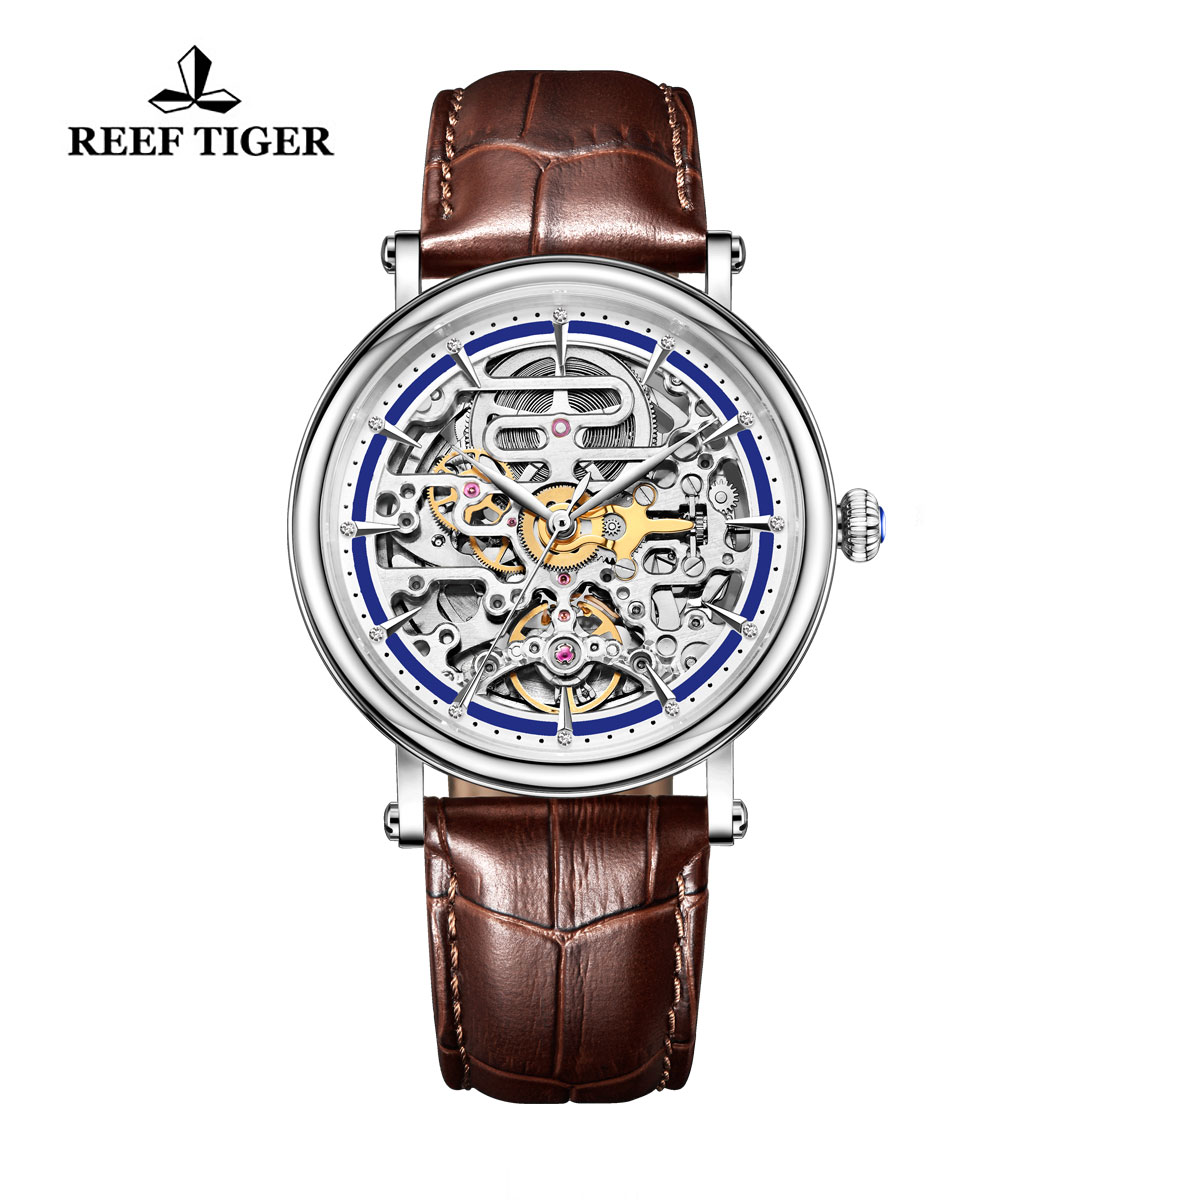 Reef Tiger Casual Watch with Baroque Style Skeleton Dial Steel Case RGA1917-YLB